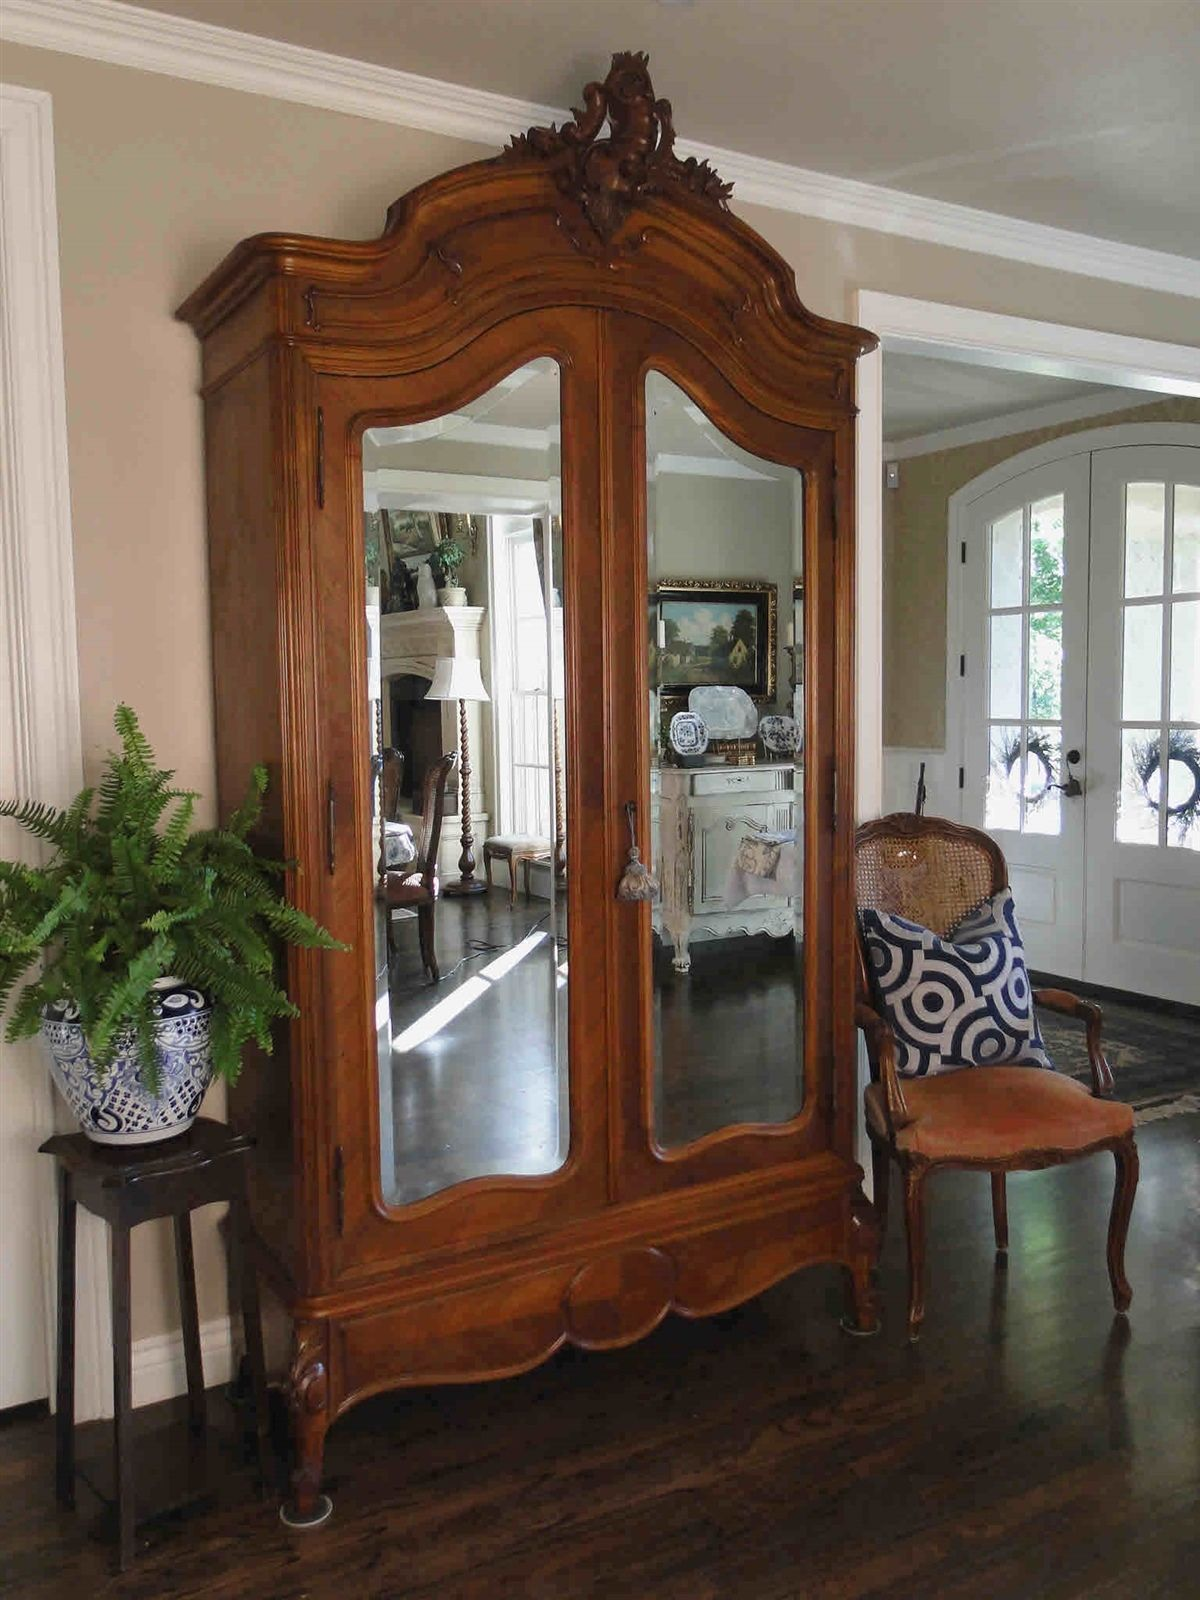 Antique French Louis IV Armoire Wardrobe Walnut Beveled Mirrored Doors w/key old